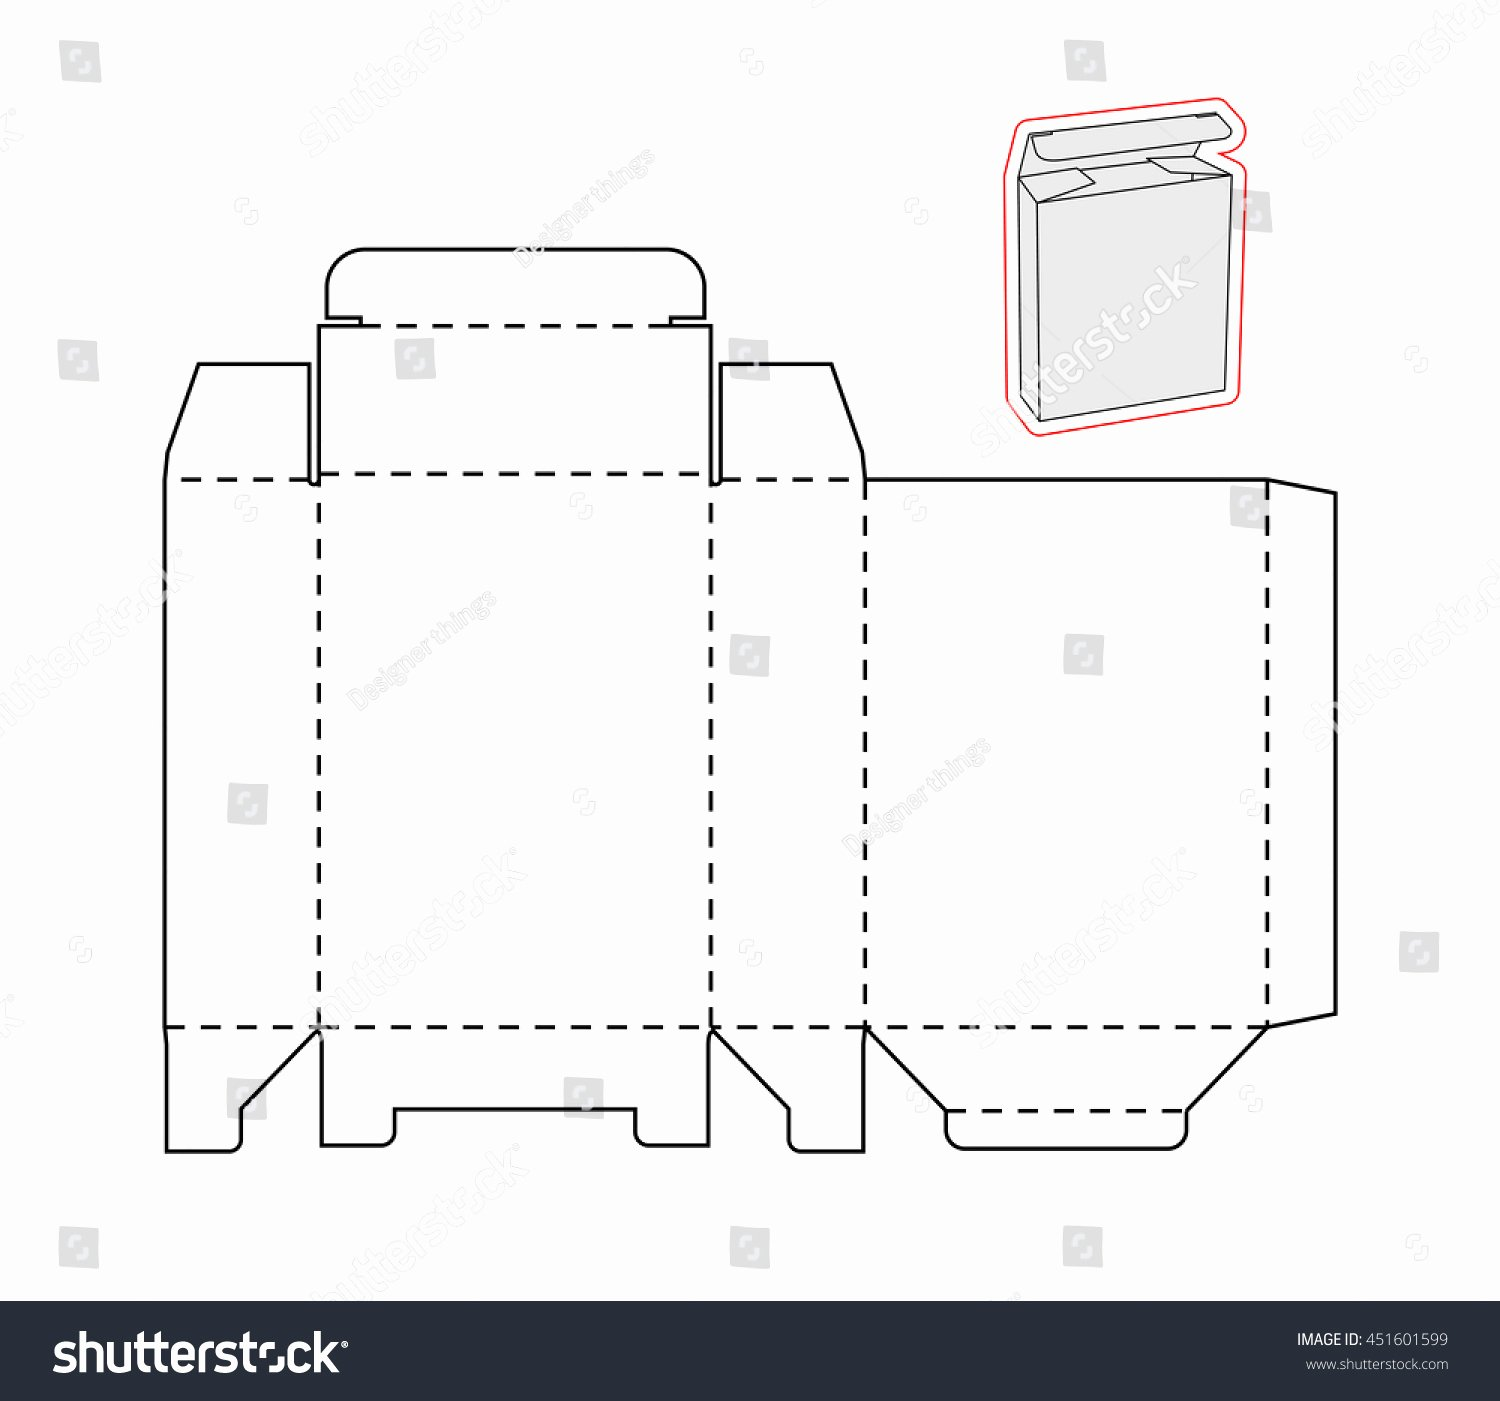 Cut Out Box Template Inspirational Template Simple Box Cut Out Paper Stock Vector